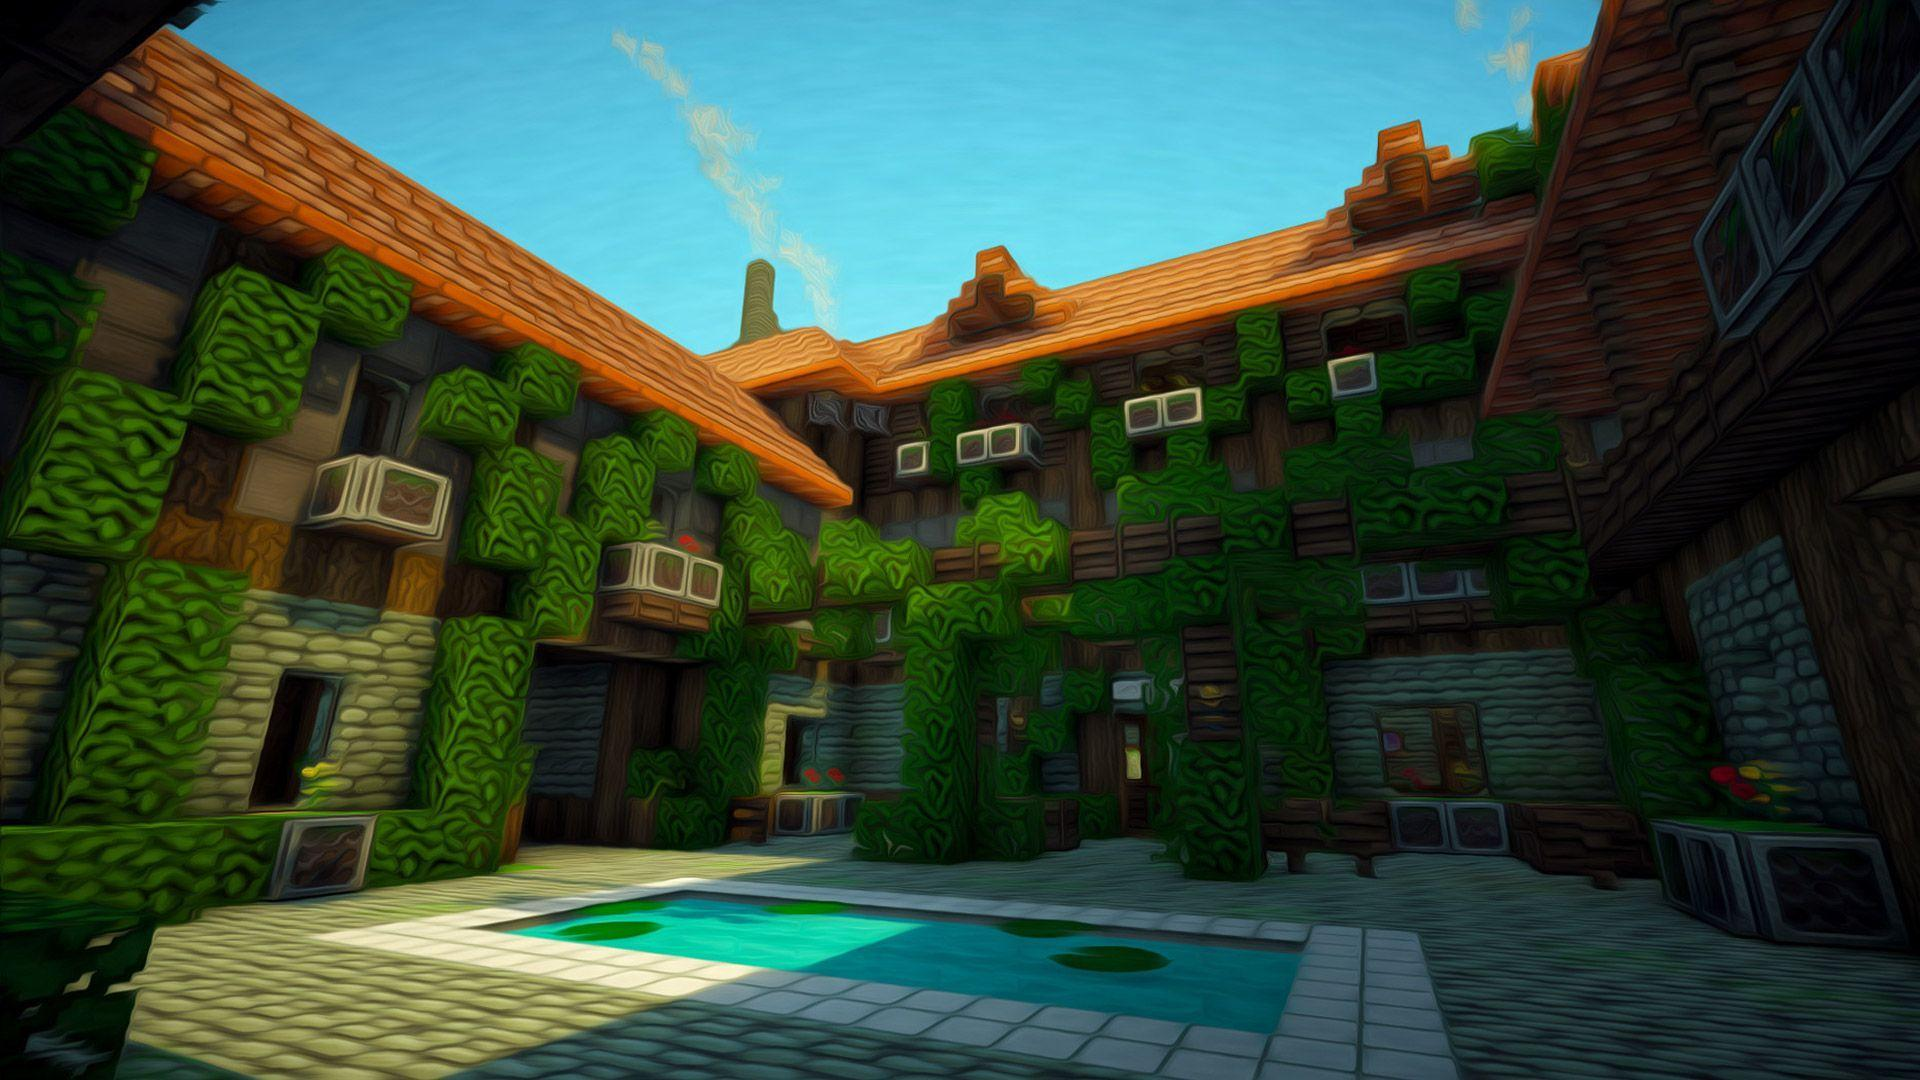 Minecraft House Wallpapers Top Free Minecraft House Backgrounds Wallpaperaccess